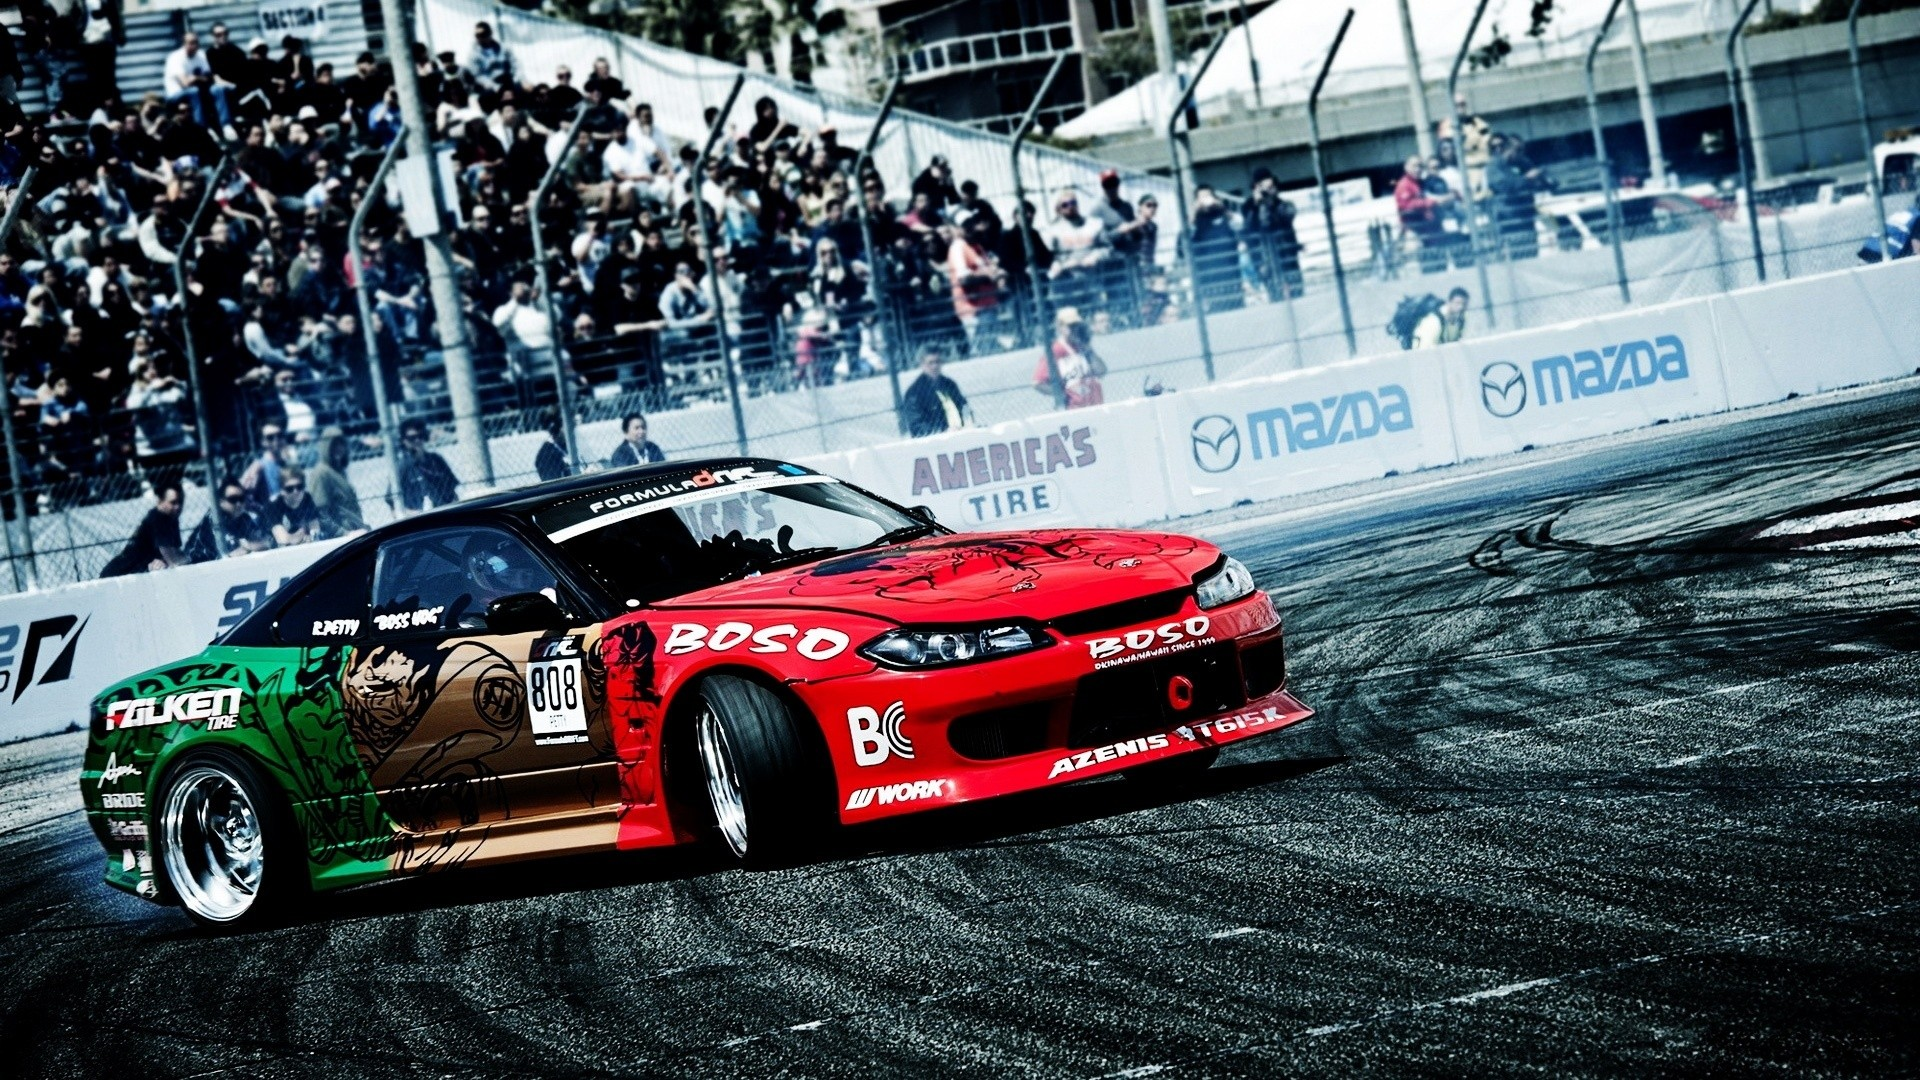 Cars Drift Wallpaper 1920x1080 Cars Drift Nissan Silvia Drifting 1920x1080